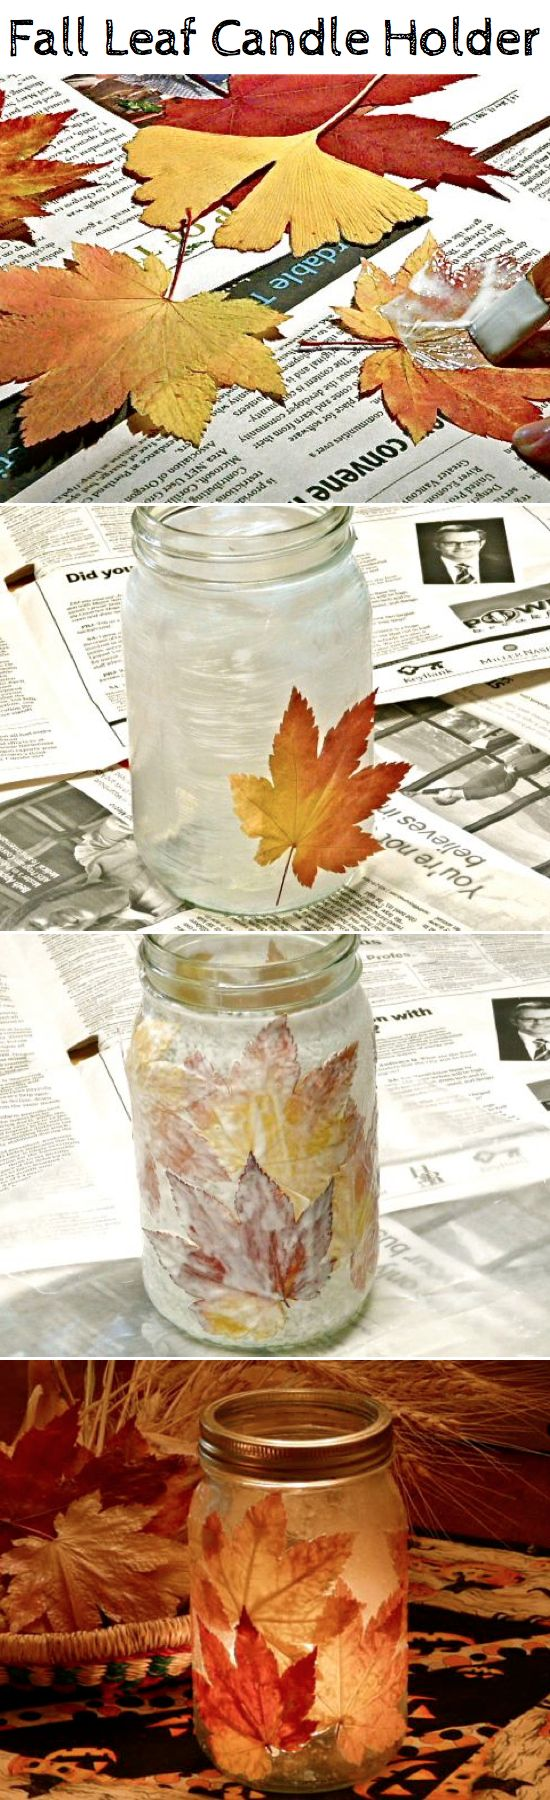 "Fun fall candle holder idea. Maybe I'll get crafty and make these for Thanksgiving. (Since I'm one of those people who still thinks of TG as an autumn holiday, rather than ""pre-Christmas."")"